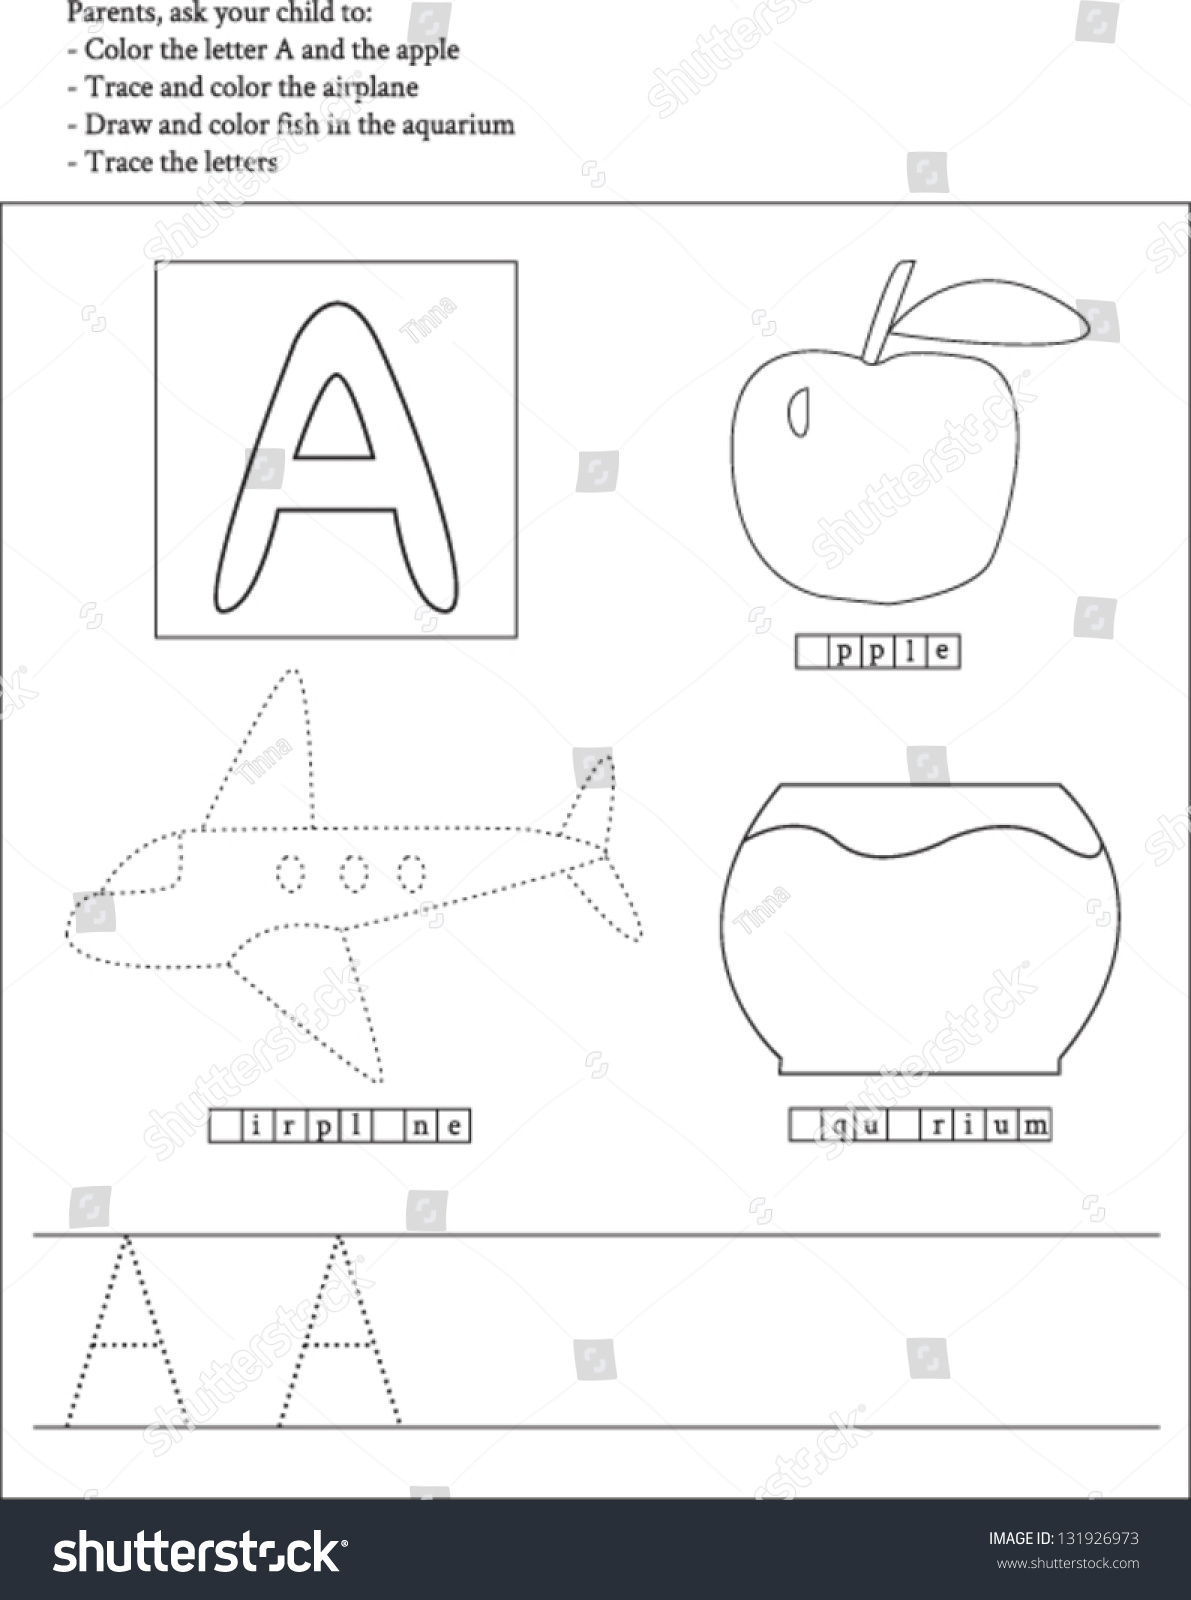 worksheet Vectors Worksheet vectors worksheet site trace and color letter a for preschoolers stock vector